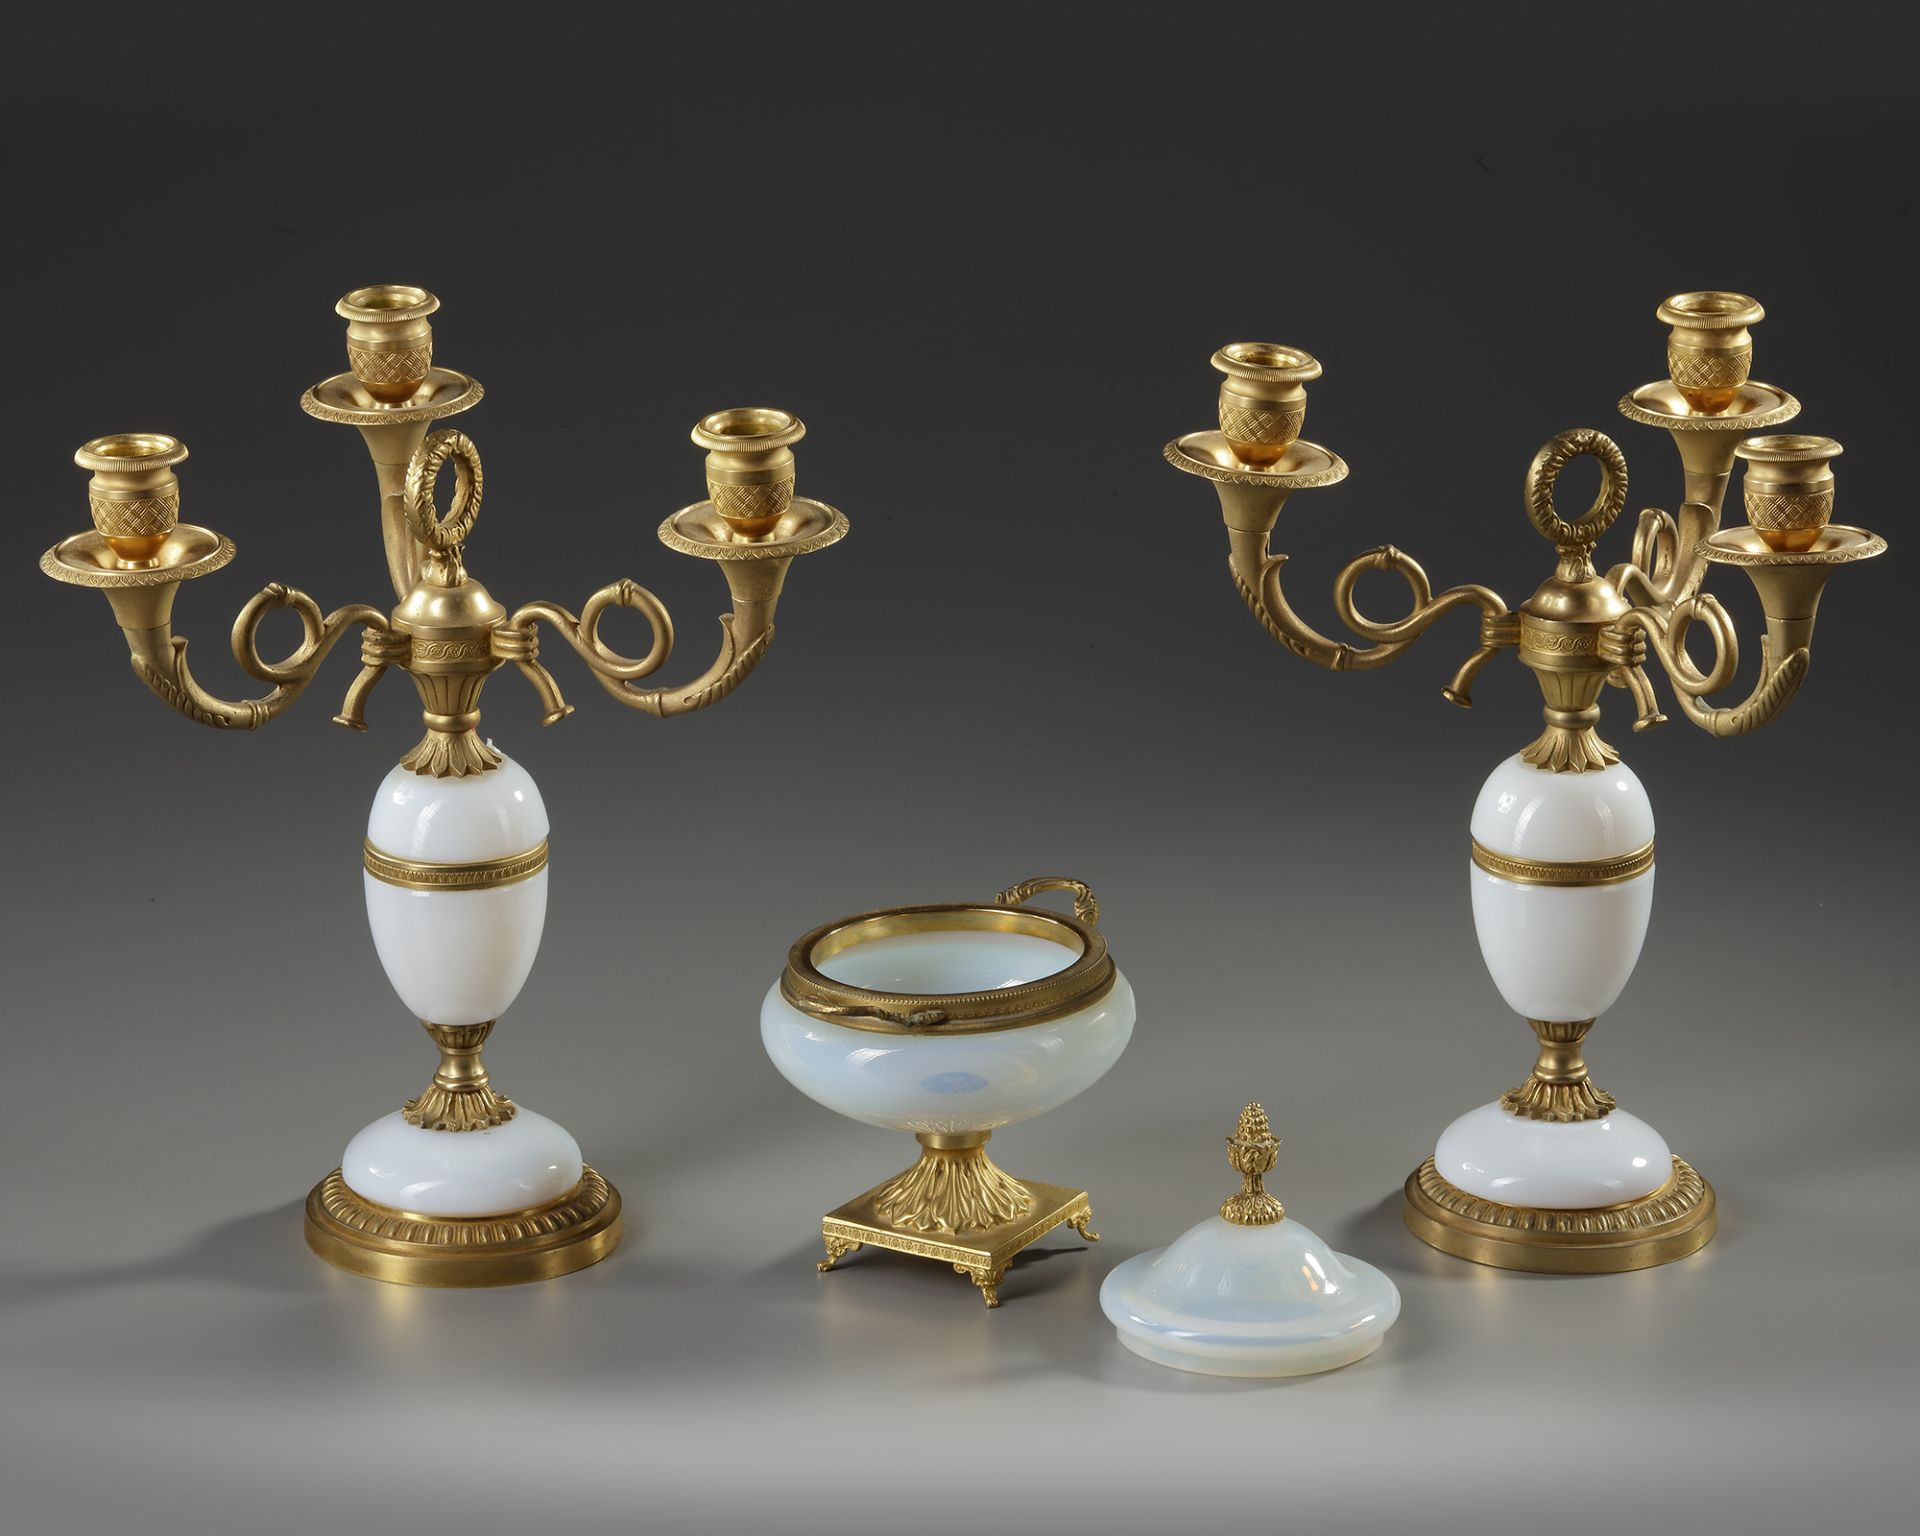 A WHITE OPALINE AND ORMOLU SET, CHARLES X, 19TH CENTURY - Image 3 of 3